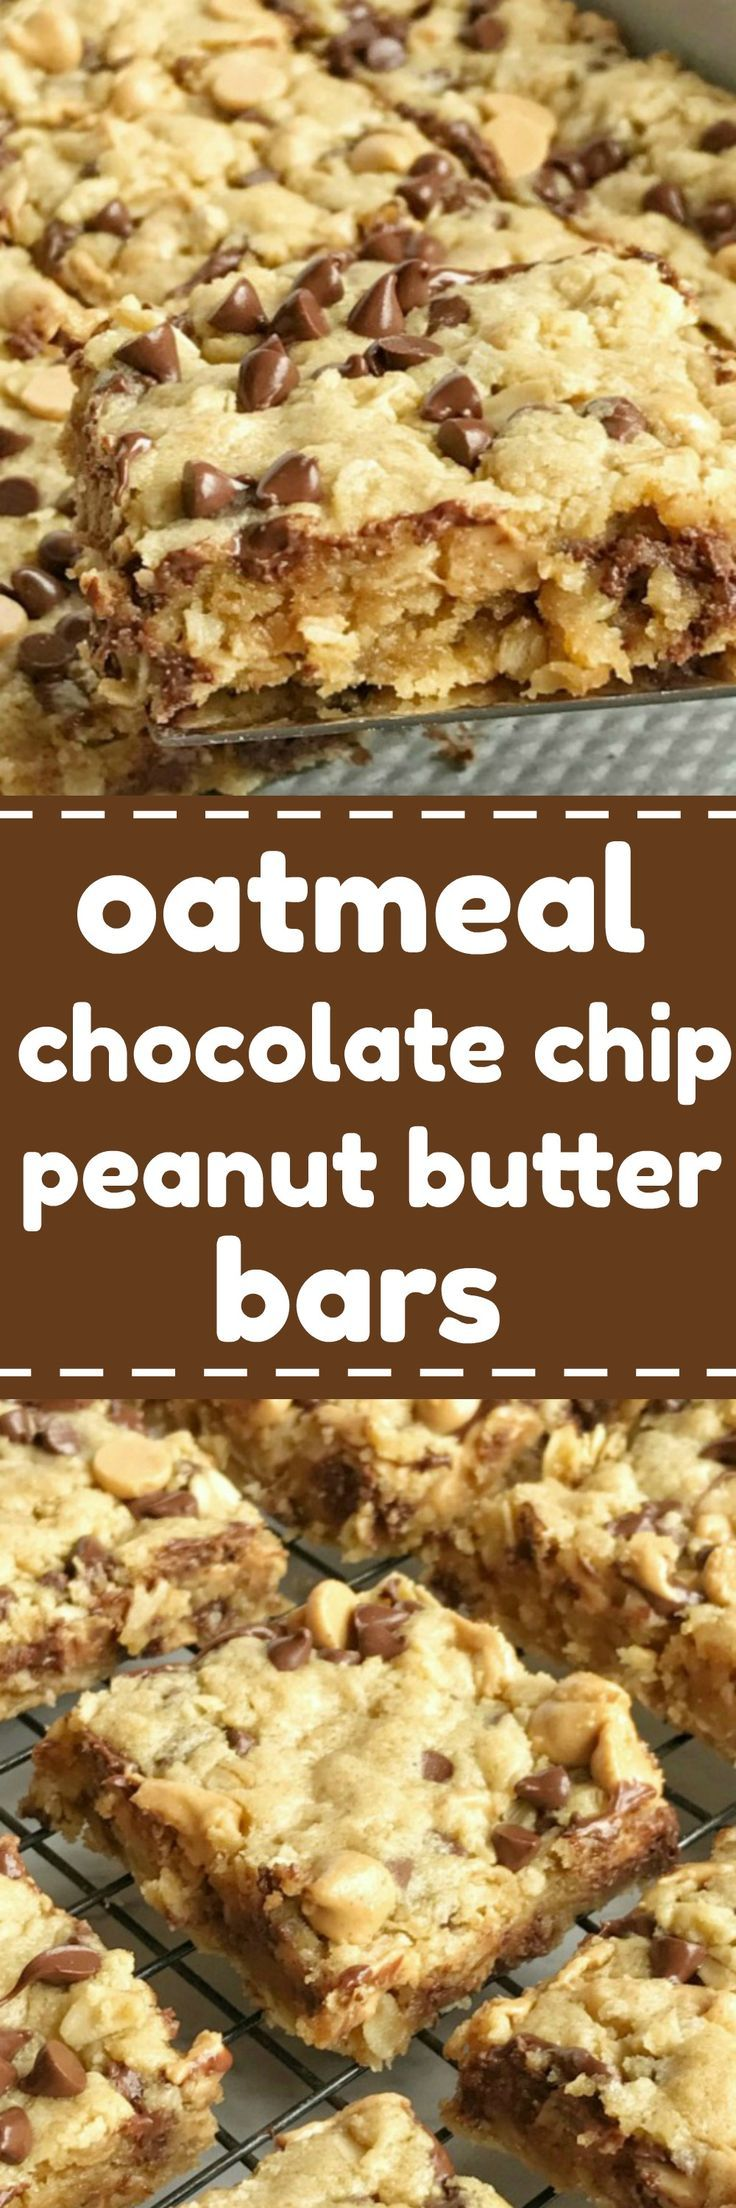 Oatmeal chocolate chip peanut butter bars are a family favorite dessert recipe that everyone loves. Soft cookie bars loaded with oatmeal, peanut butter, peanut butter chips, and chocolate chips. These are a peanut butter & chocolate lovers dream and they